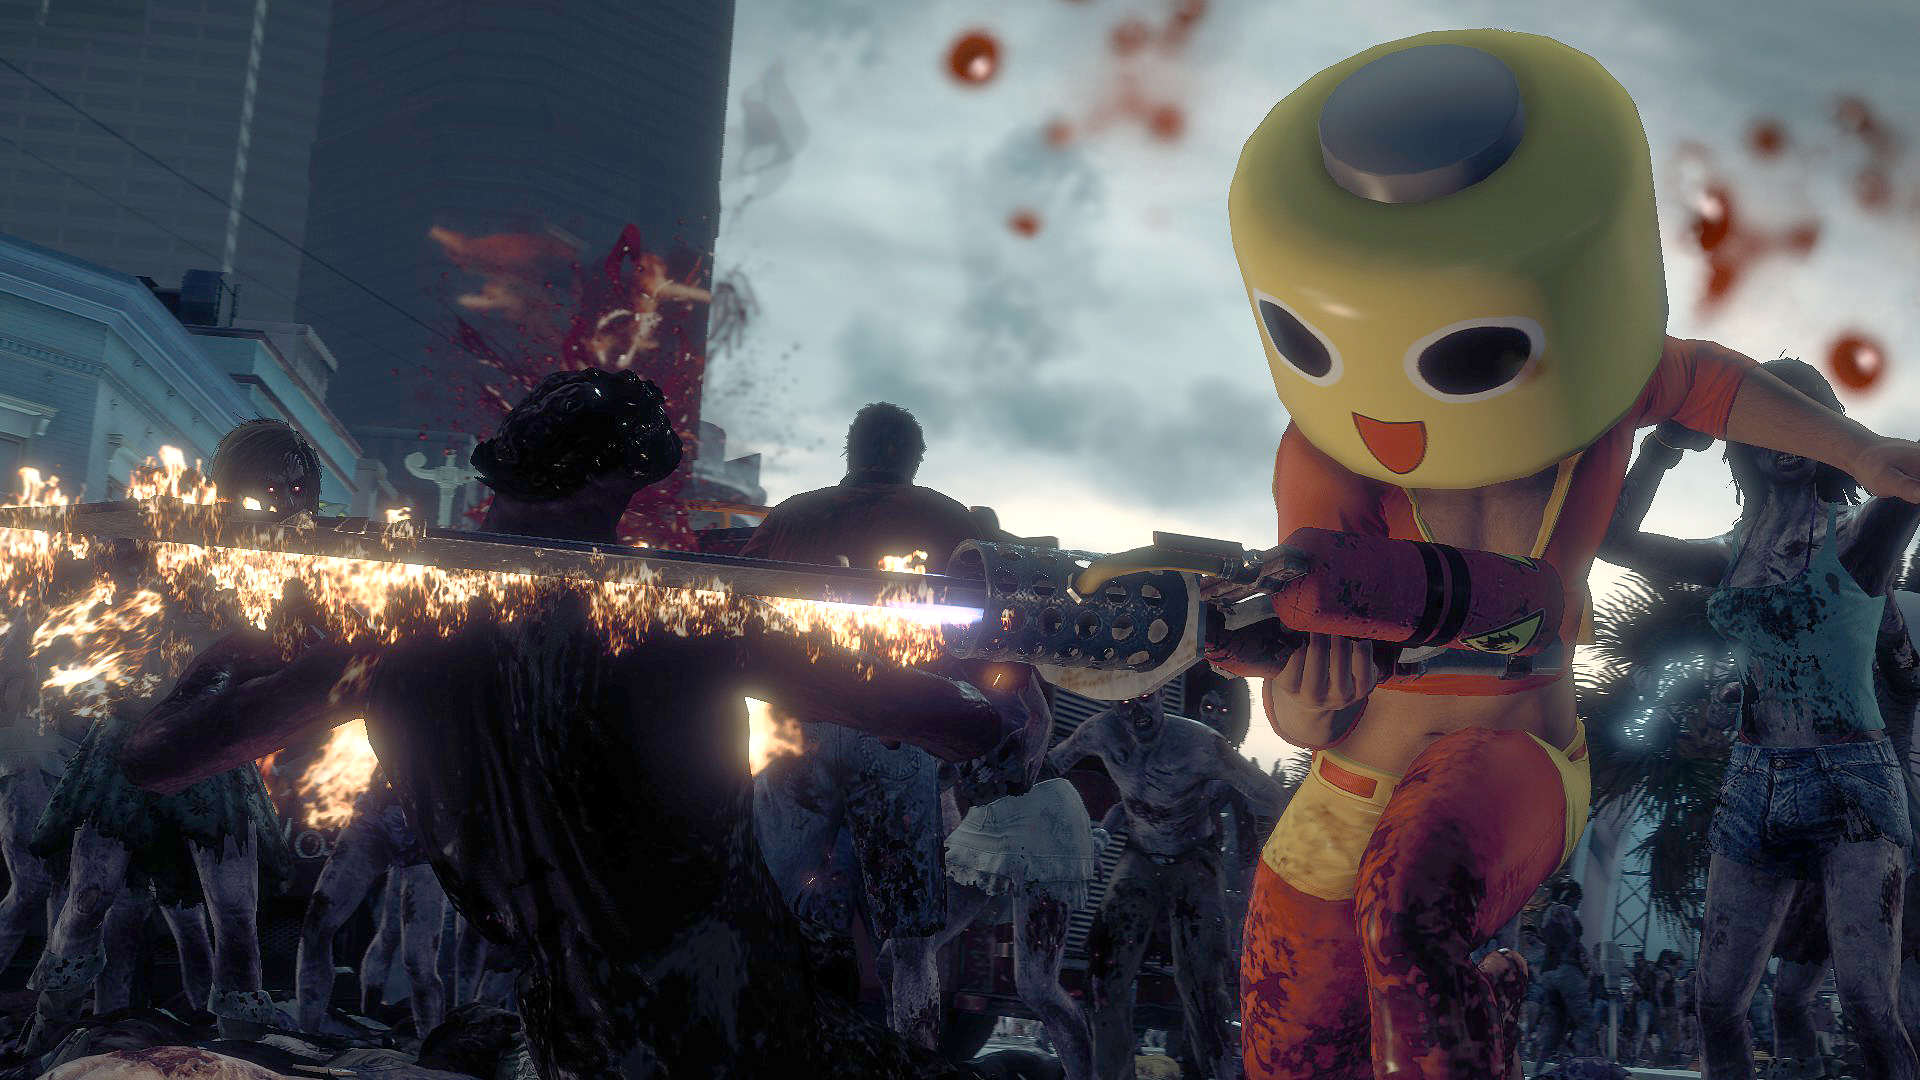 New Leak Suggests Dead Rising 4 To Be Announced At E3 dead rising 3 flame sword 100412196 orig